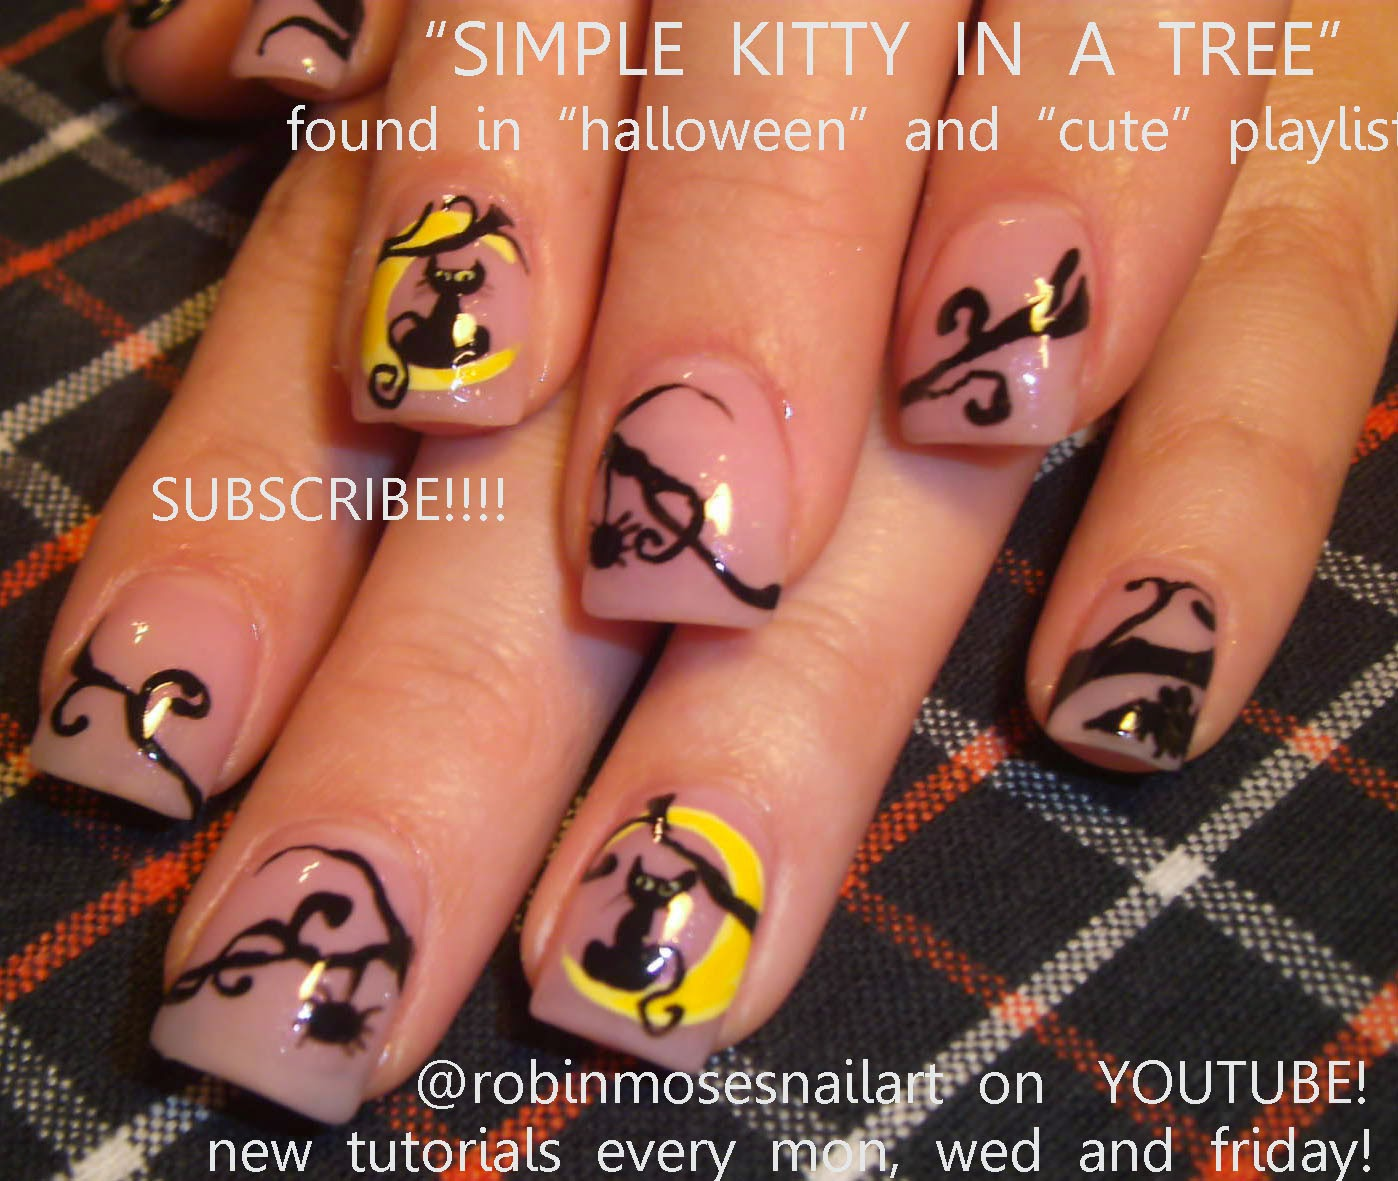 Robin moses nail art halloween nails black cat nails black nail art tutorials halloween nails diy easy halloween for beginners and up halloween nail art designs tutorial prinsesfo Images